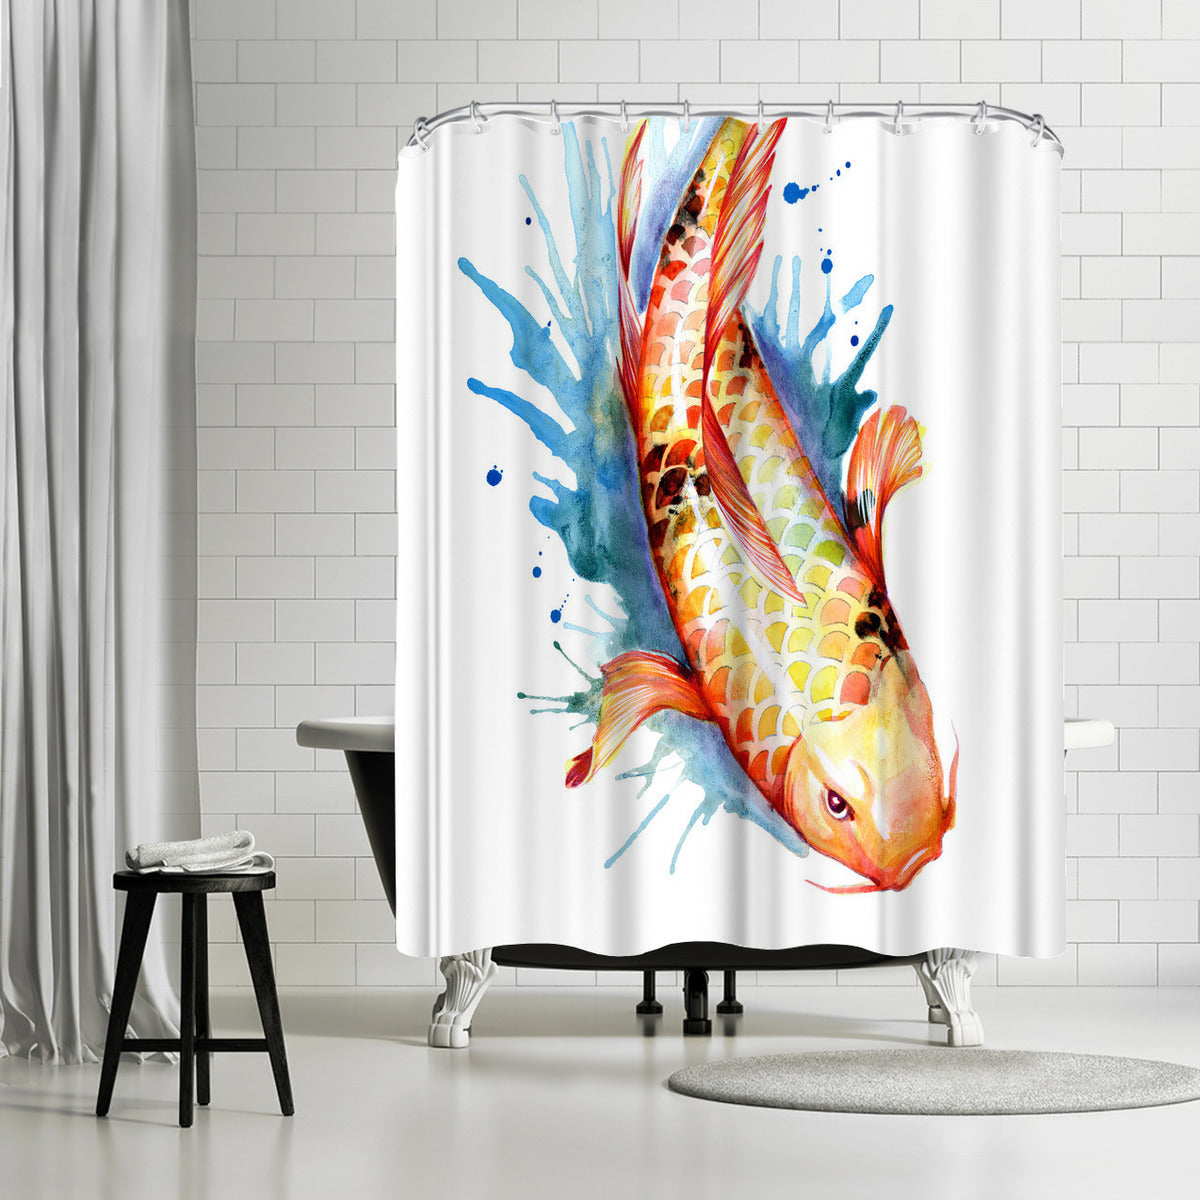 Koi Fish 2 by Sam Nagel Shower Curtain - Shower Curtain - Americanflat